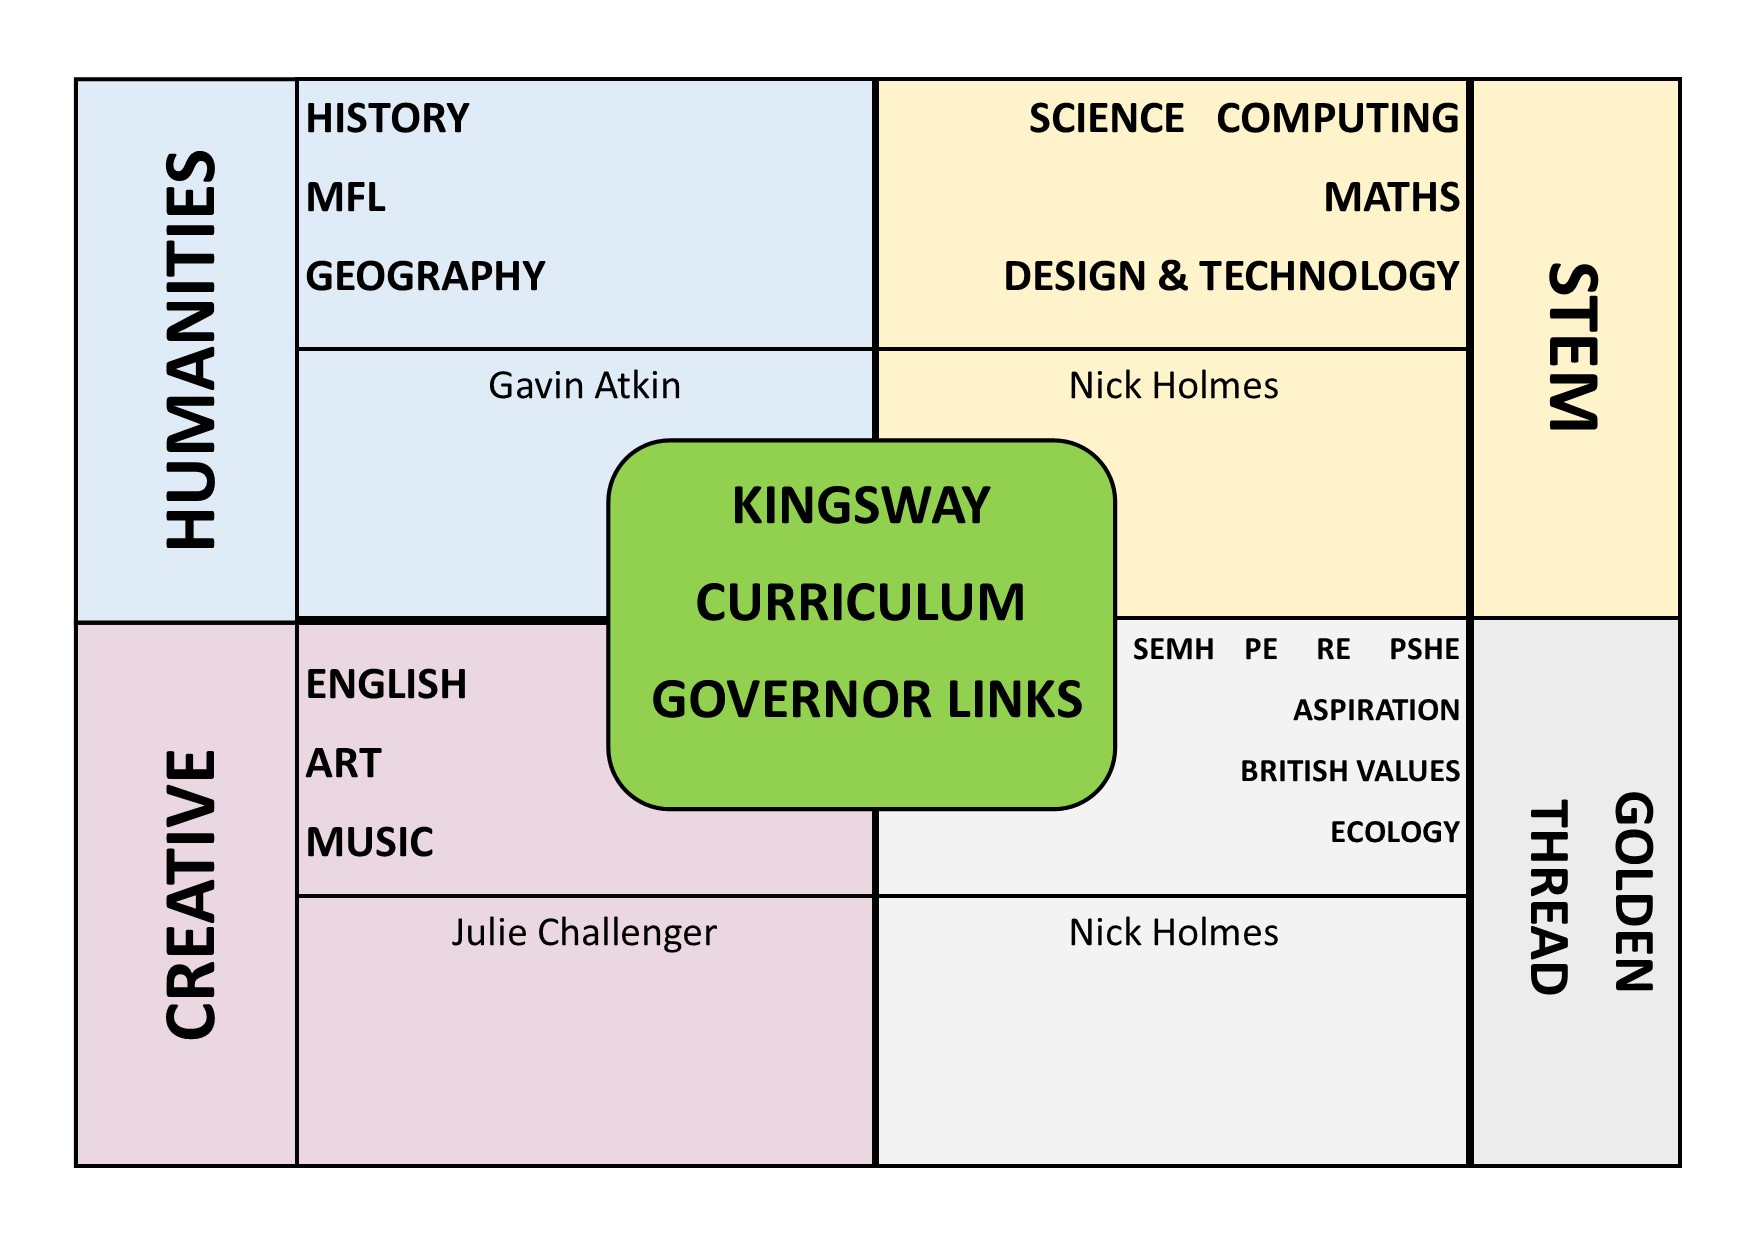 Picture depicting how governors are linked to different areas of the school curriculum. This information is a pictoral description of the membership table links.